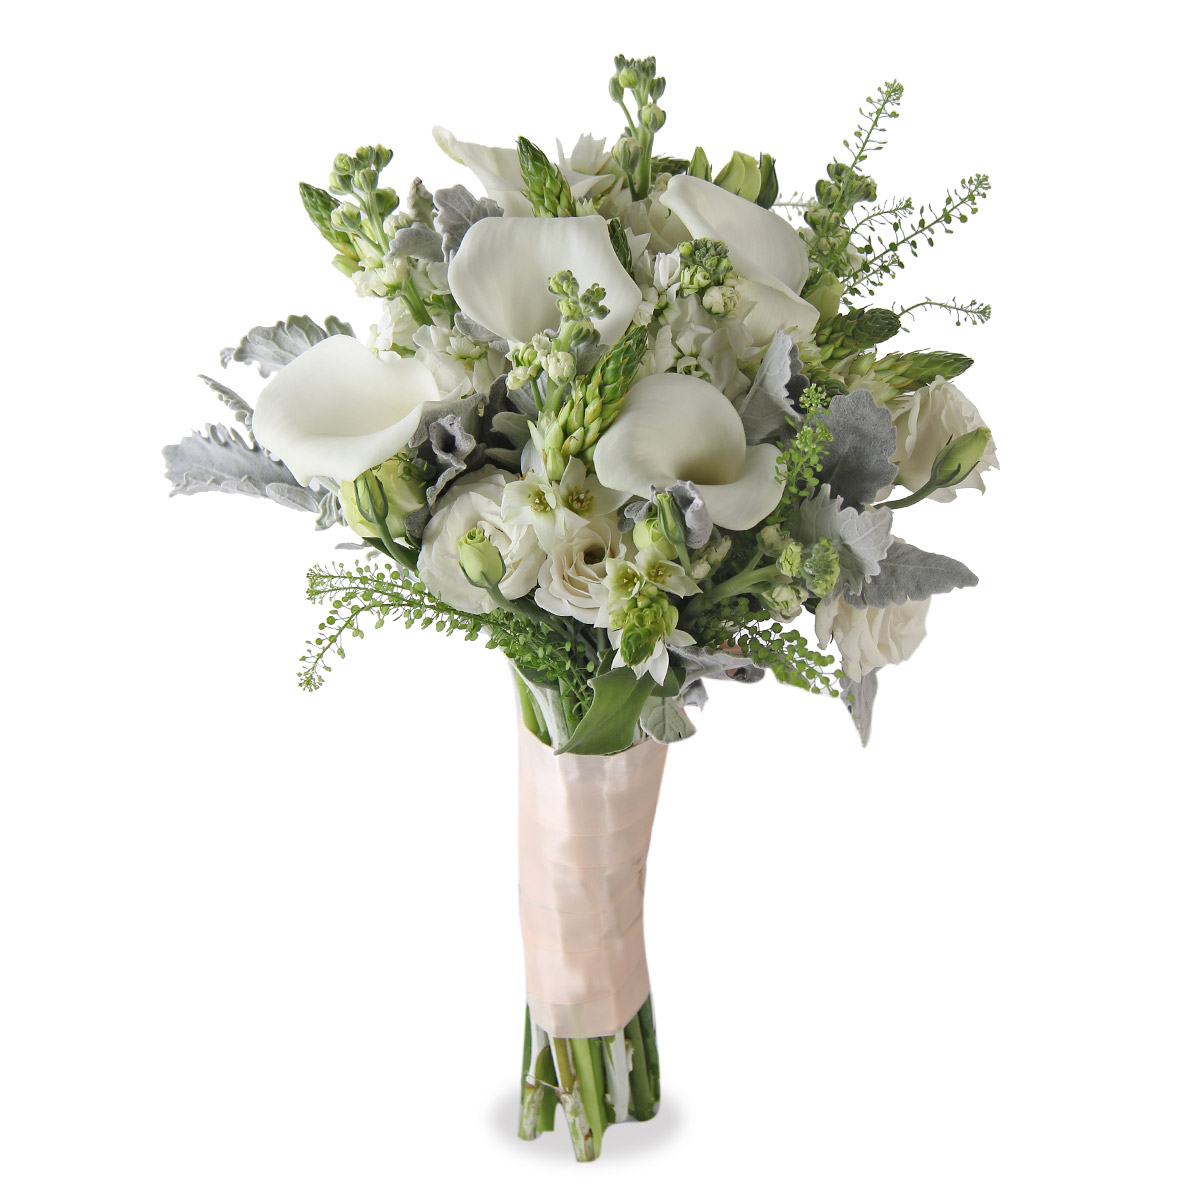 WB1607  All for Love Ornitogalum white calla lilies bridal bq